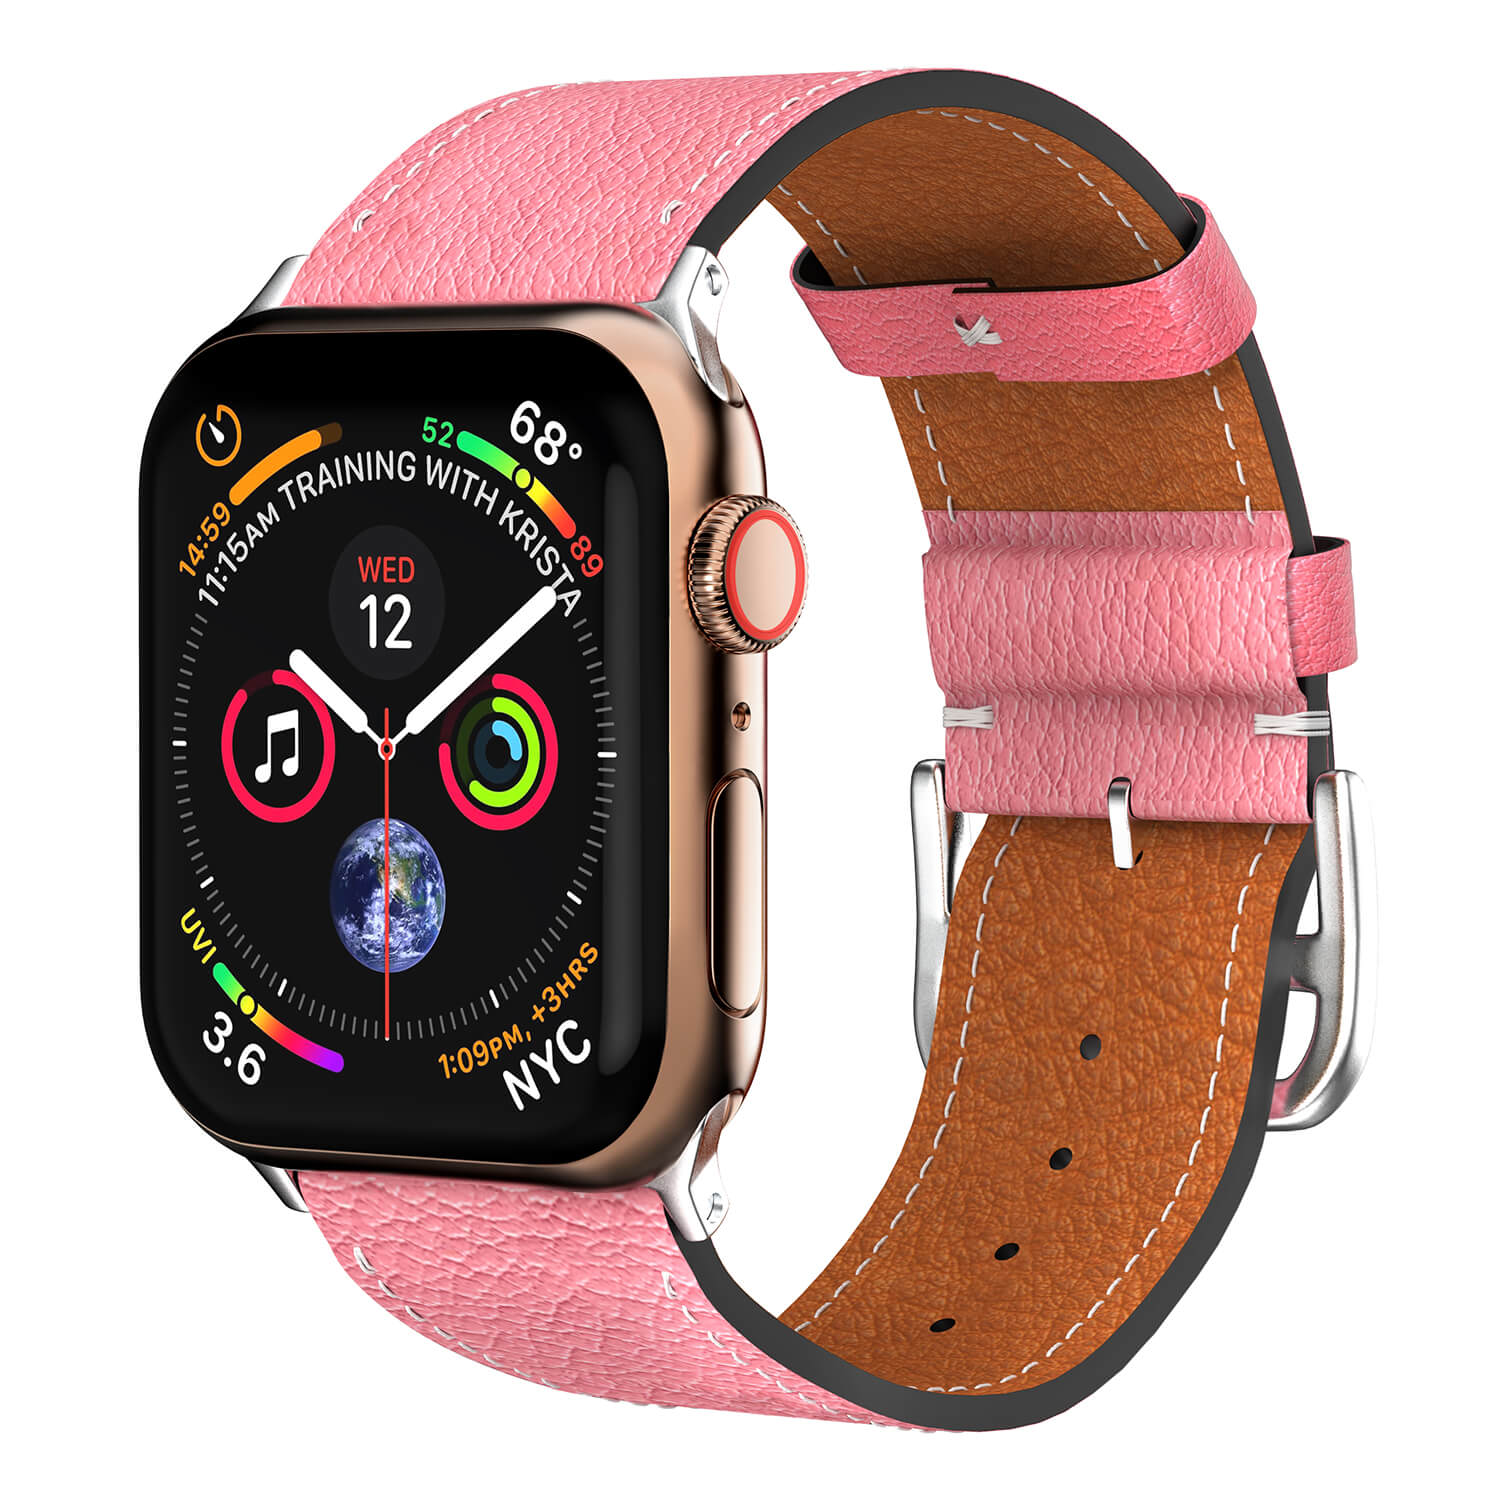 Apple Watch Pink